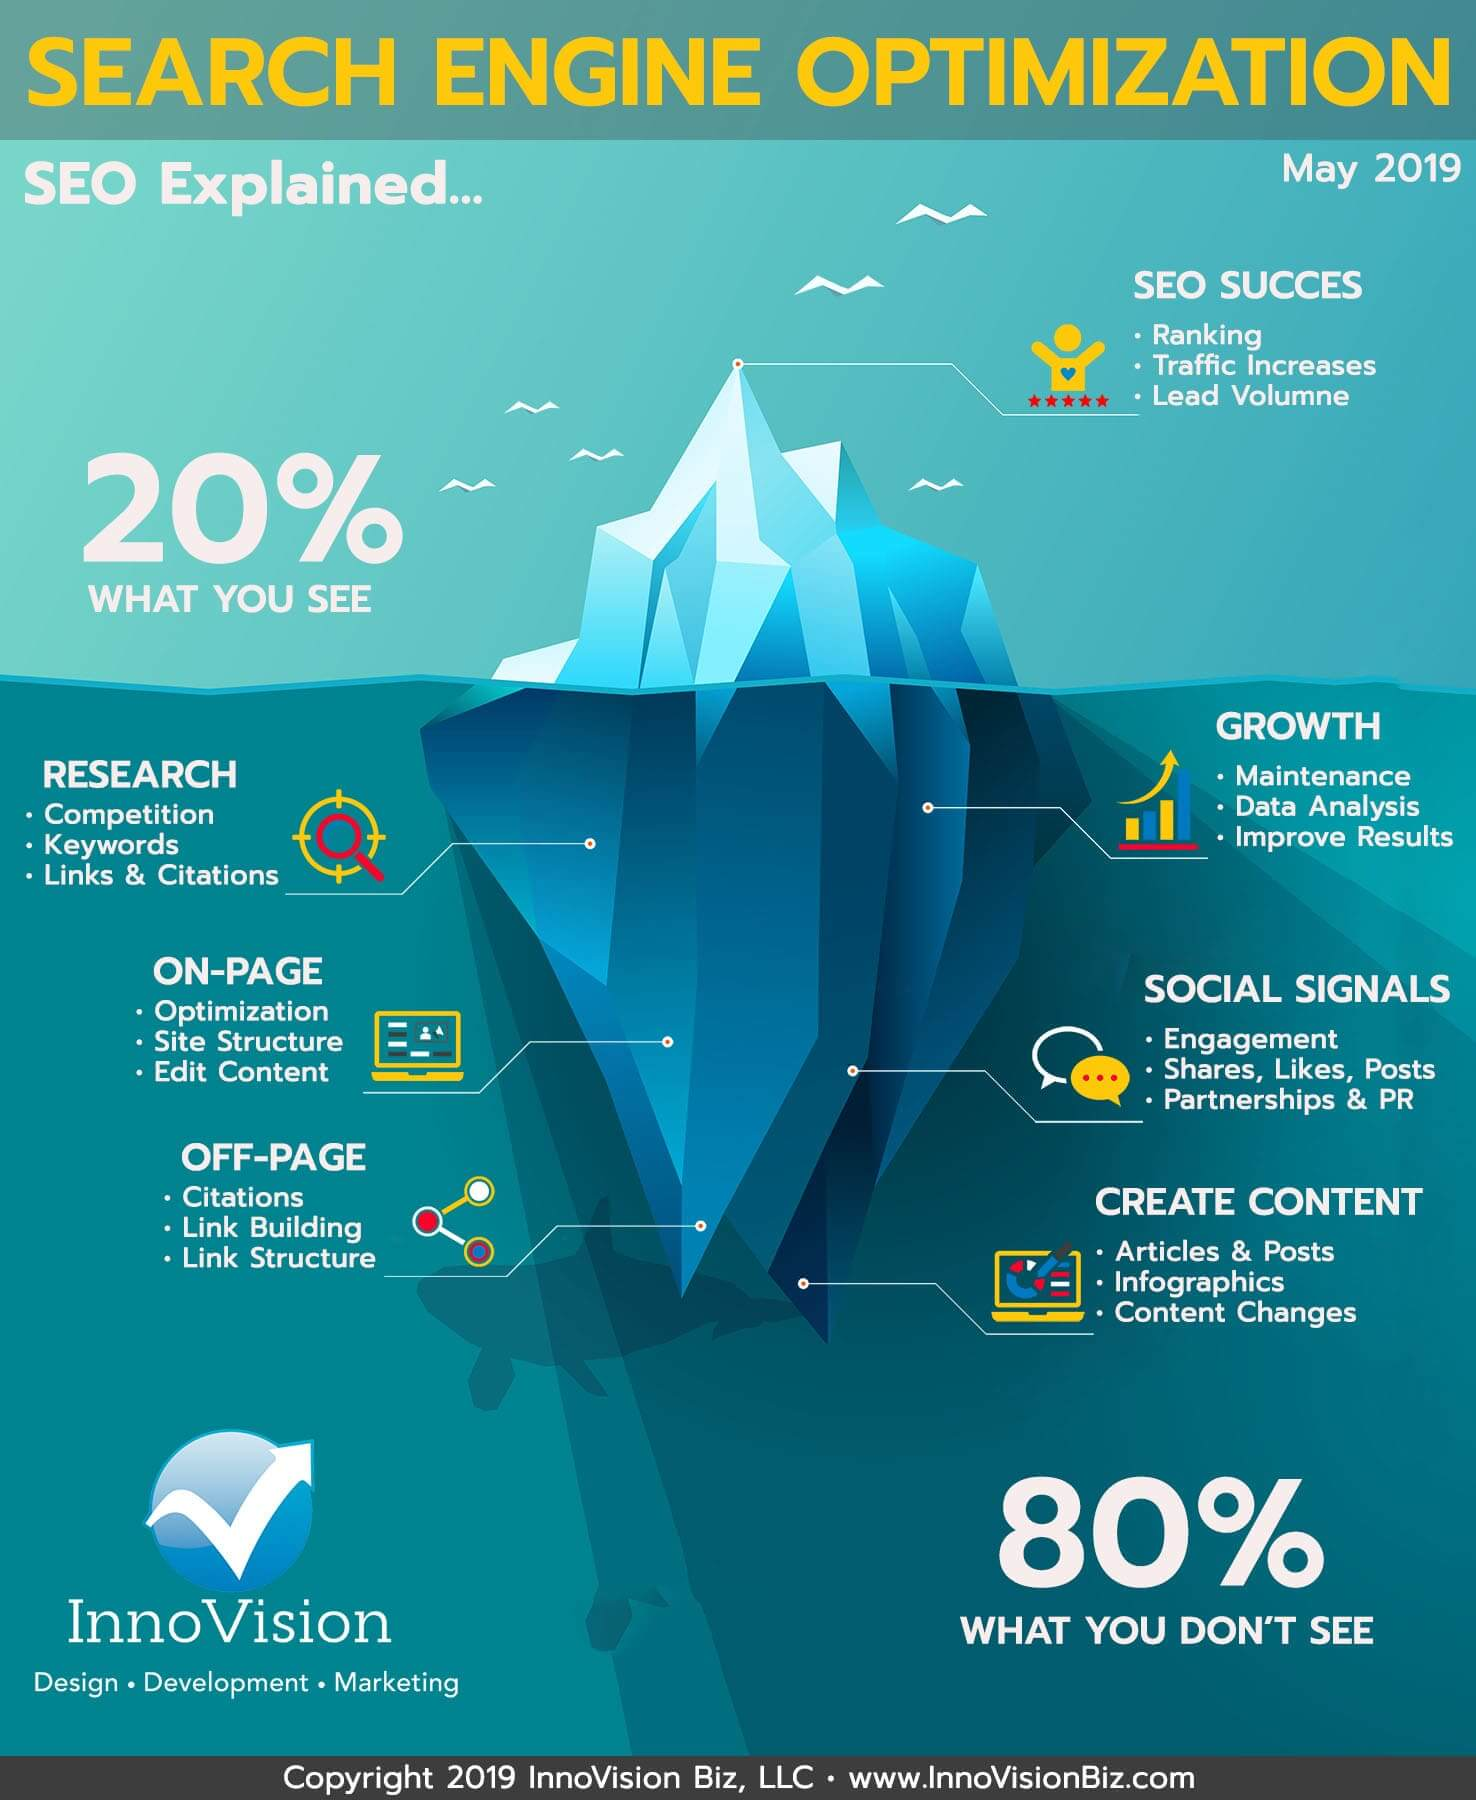 Search Engine Optimization Explained (InfoGraphic)   InnoVision